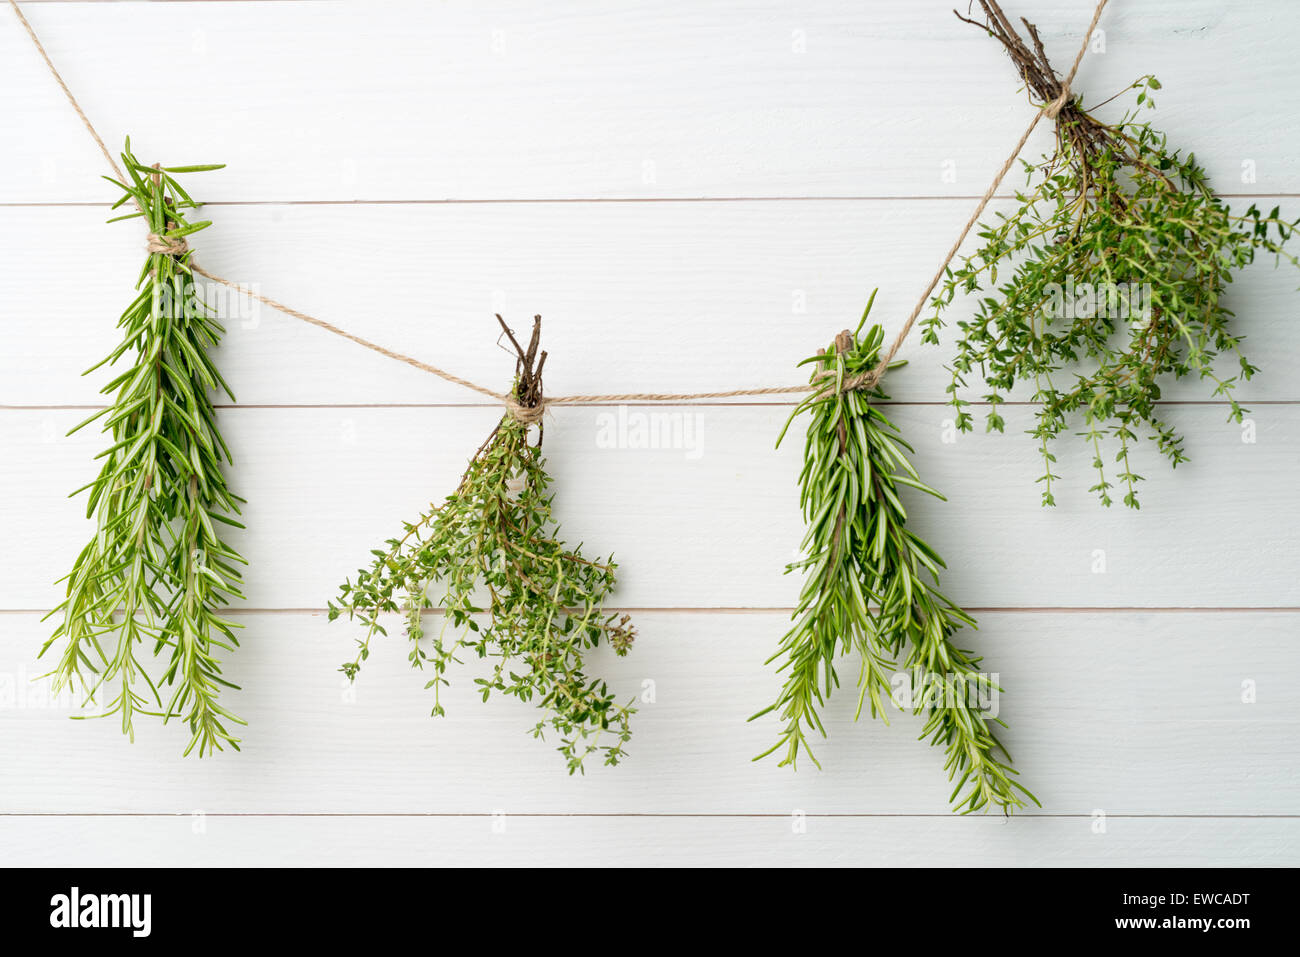 Single twigs of Thyme and Rosemary on Wooden Board. - Stock Image